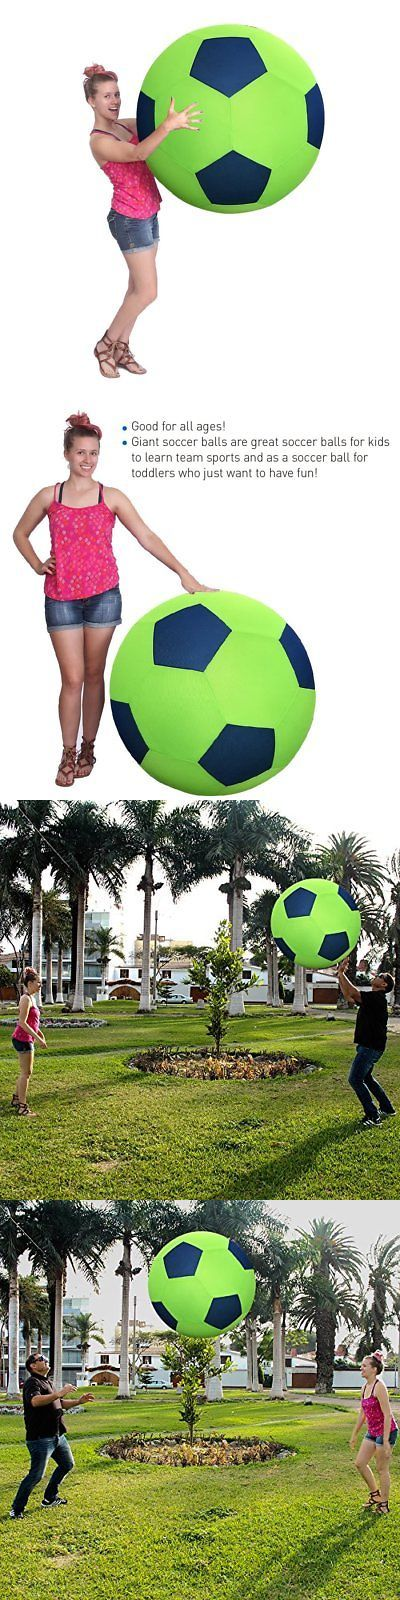 Balls and Balloons 145987: 40 Inch Huge Ball - Inflatable Giant Soccer Ball -> BUY IT NOW ONLY: $45 on eBay!